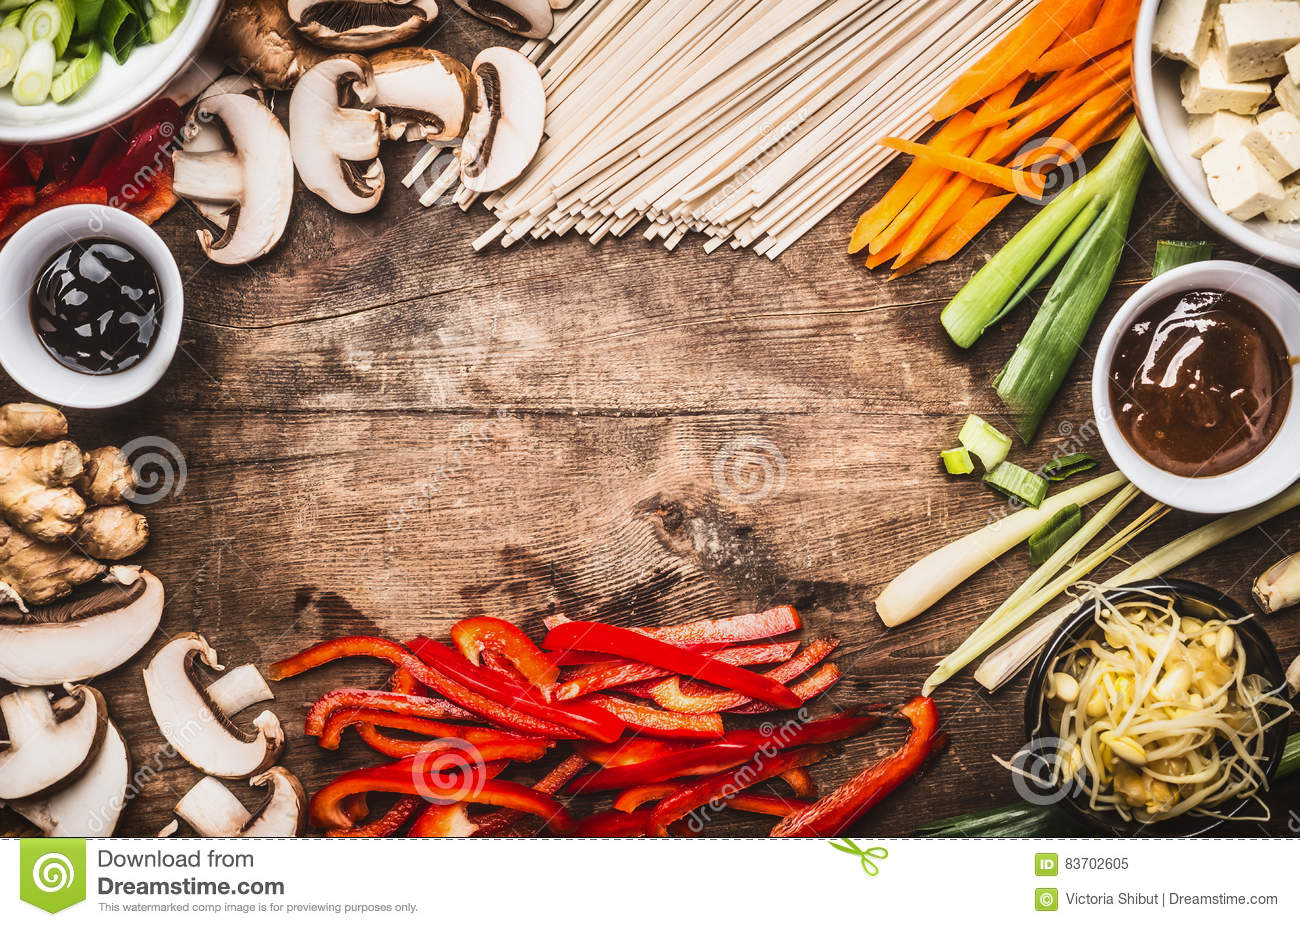 Asian food background with vegetarian cooking ingredients for Asian cuisine ingredients